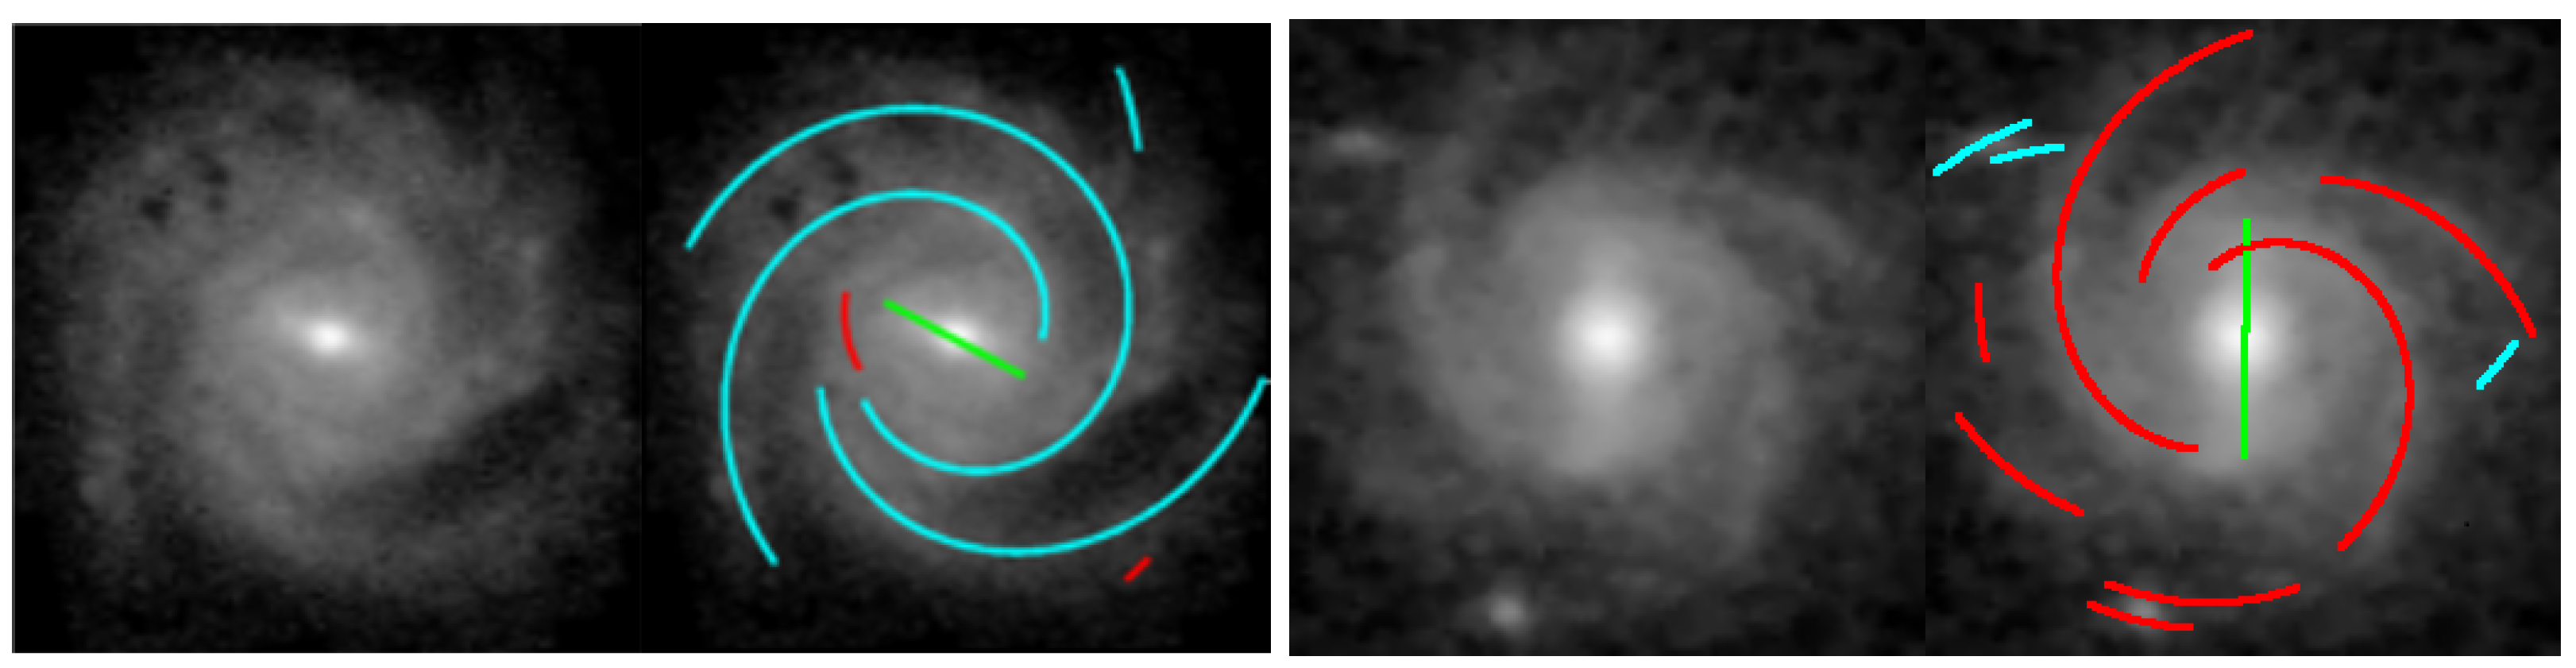 Galaxies | Free Full-Text | SpArcFiRe: Enhancing Spiral Galaxy